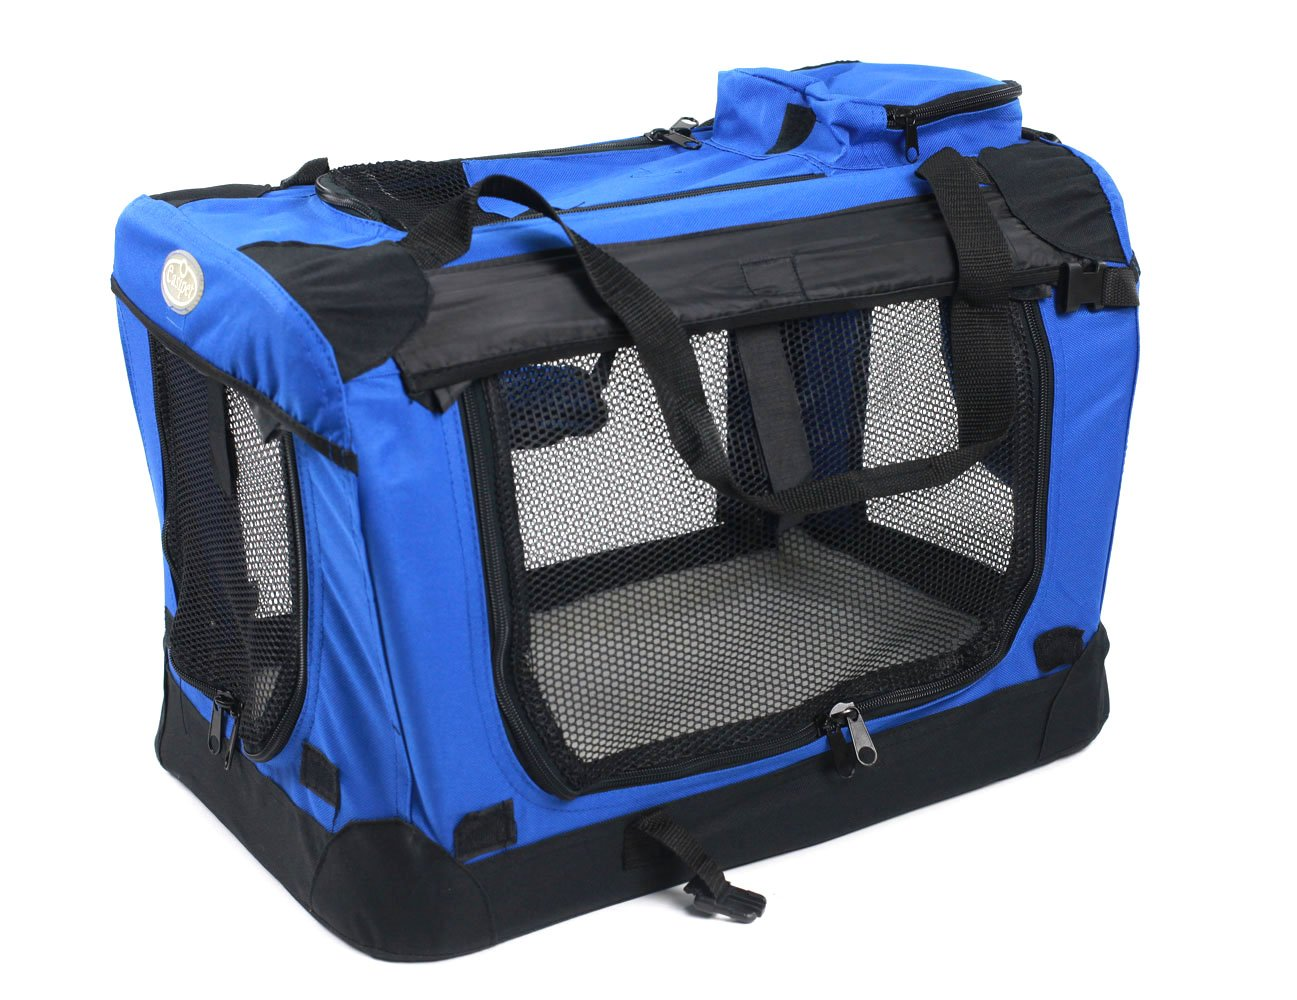 Easipet Fabric Pet Carrier, in 4 Size, Blue (Medium)